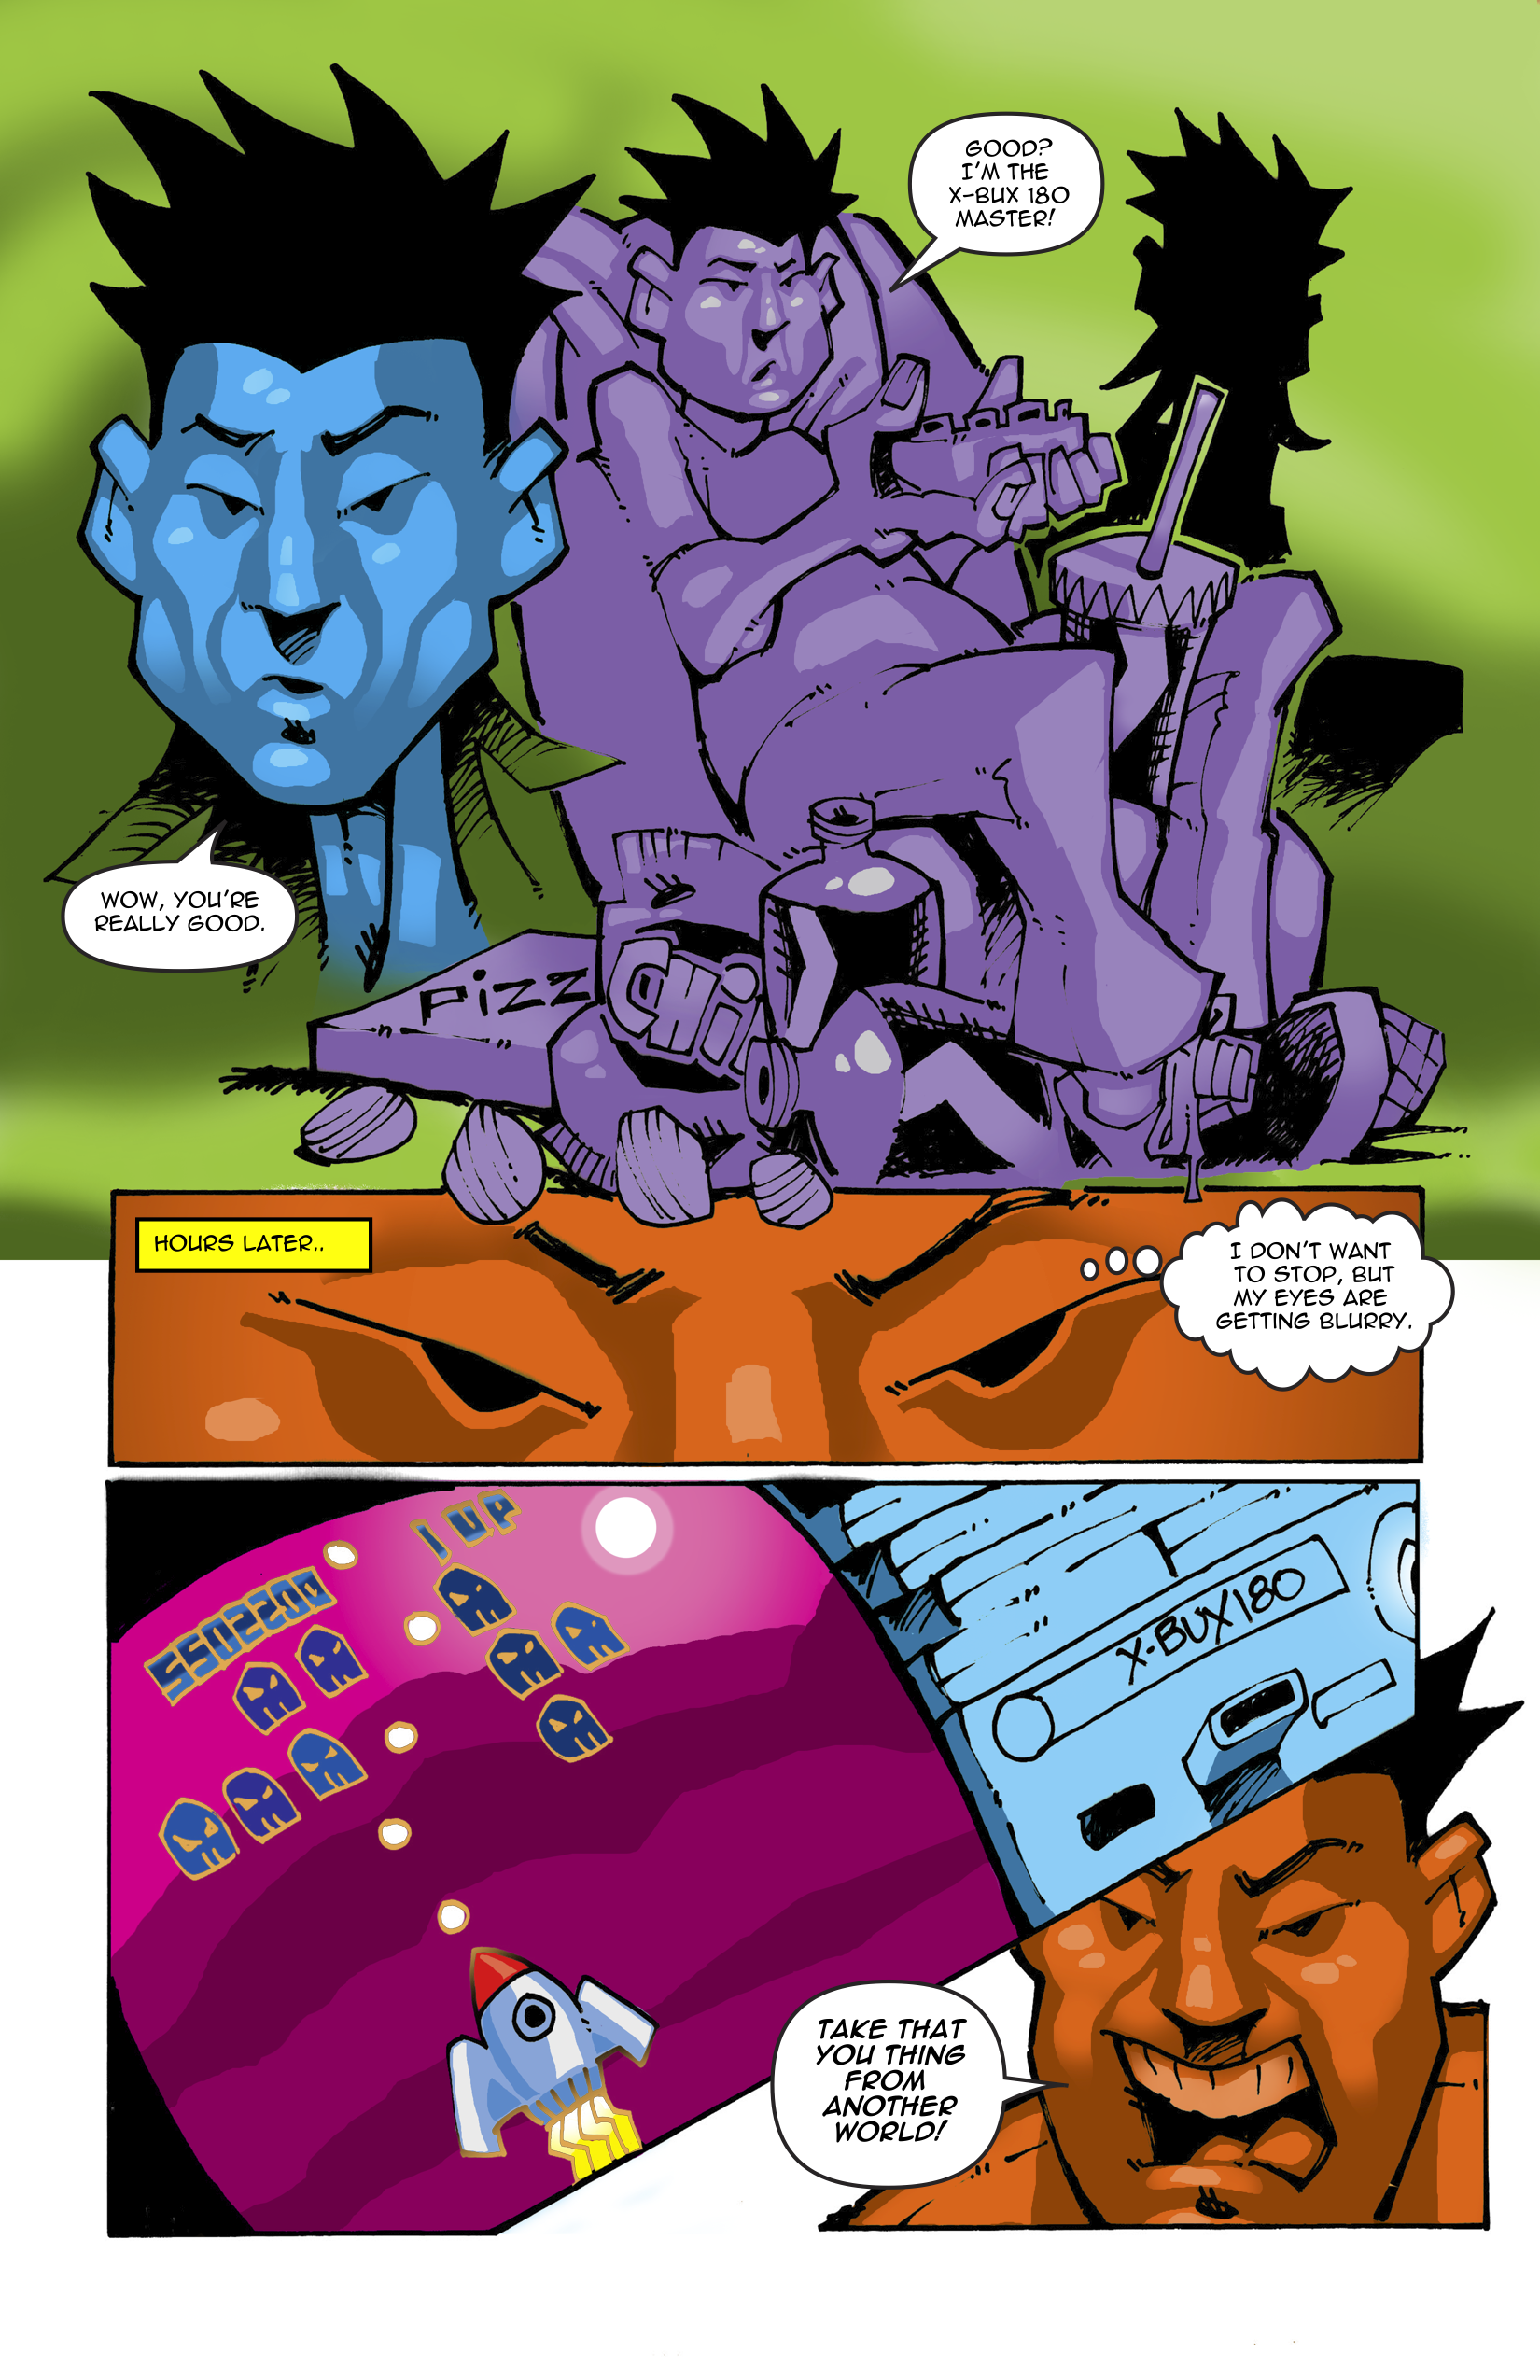 Page 9. They continue to sit on the couch playing video games. Brandon starts to get sleepy.